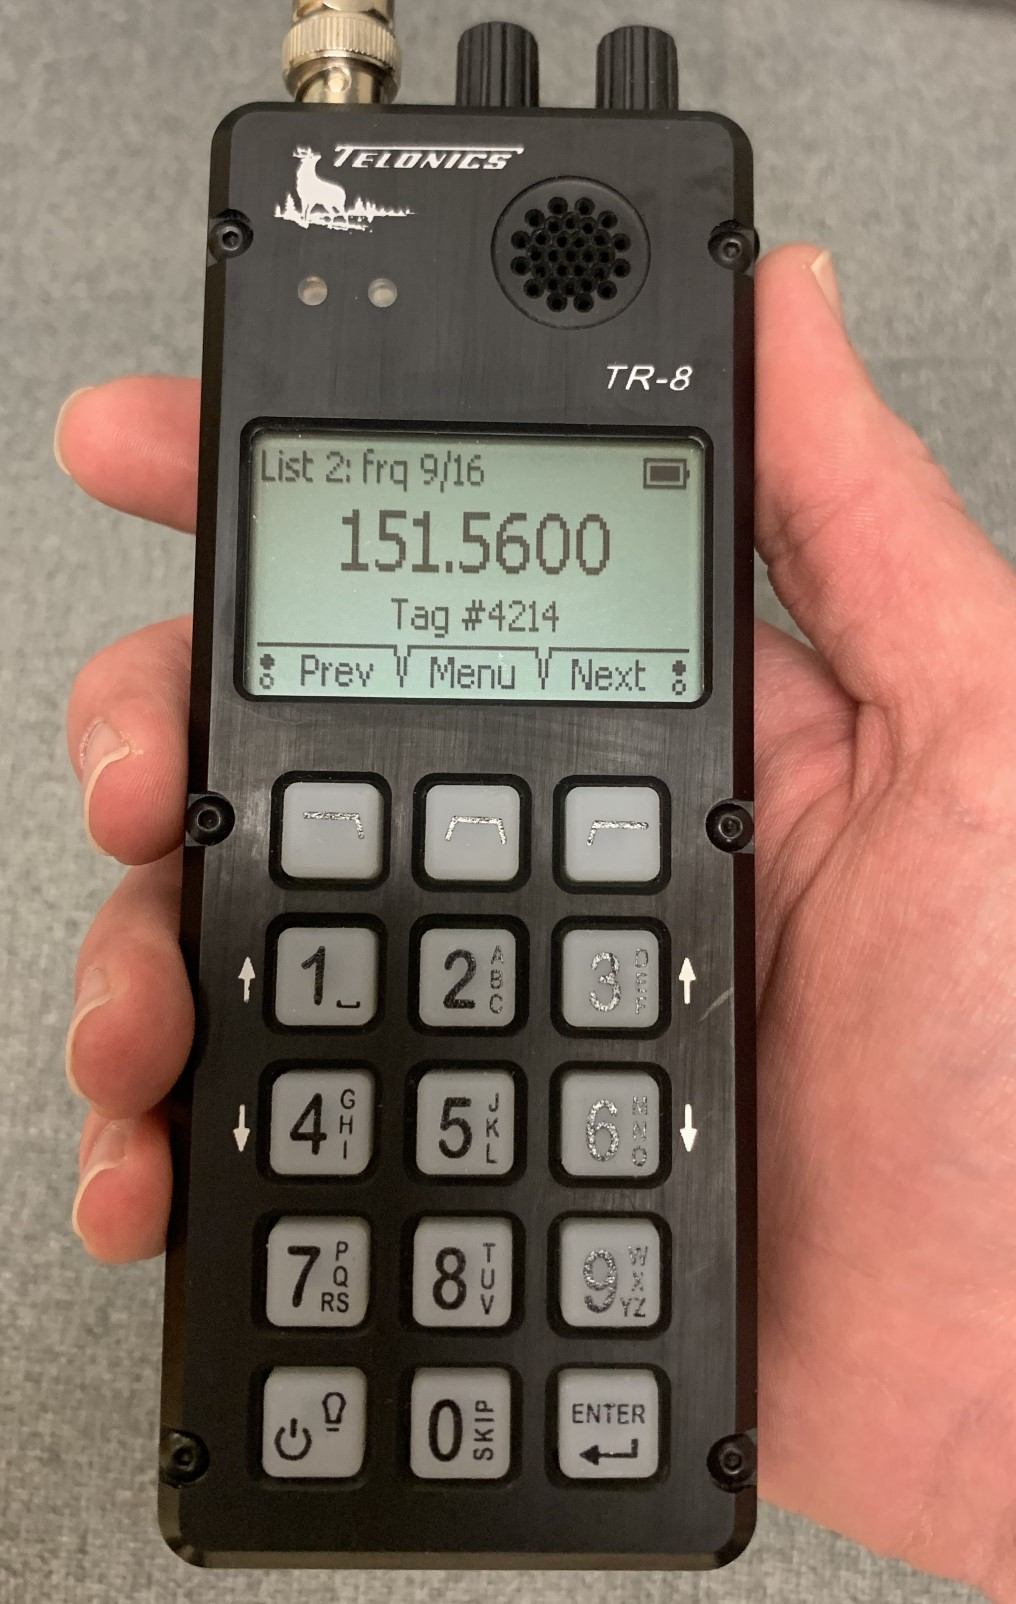 Telonics TR-8 Receiver (R-1000 replacement)